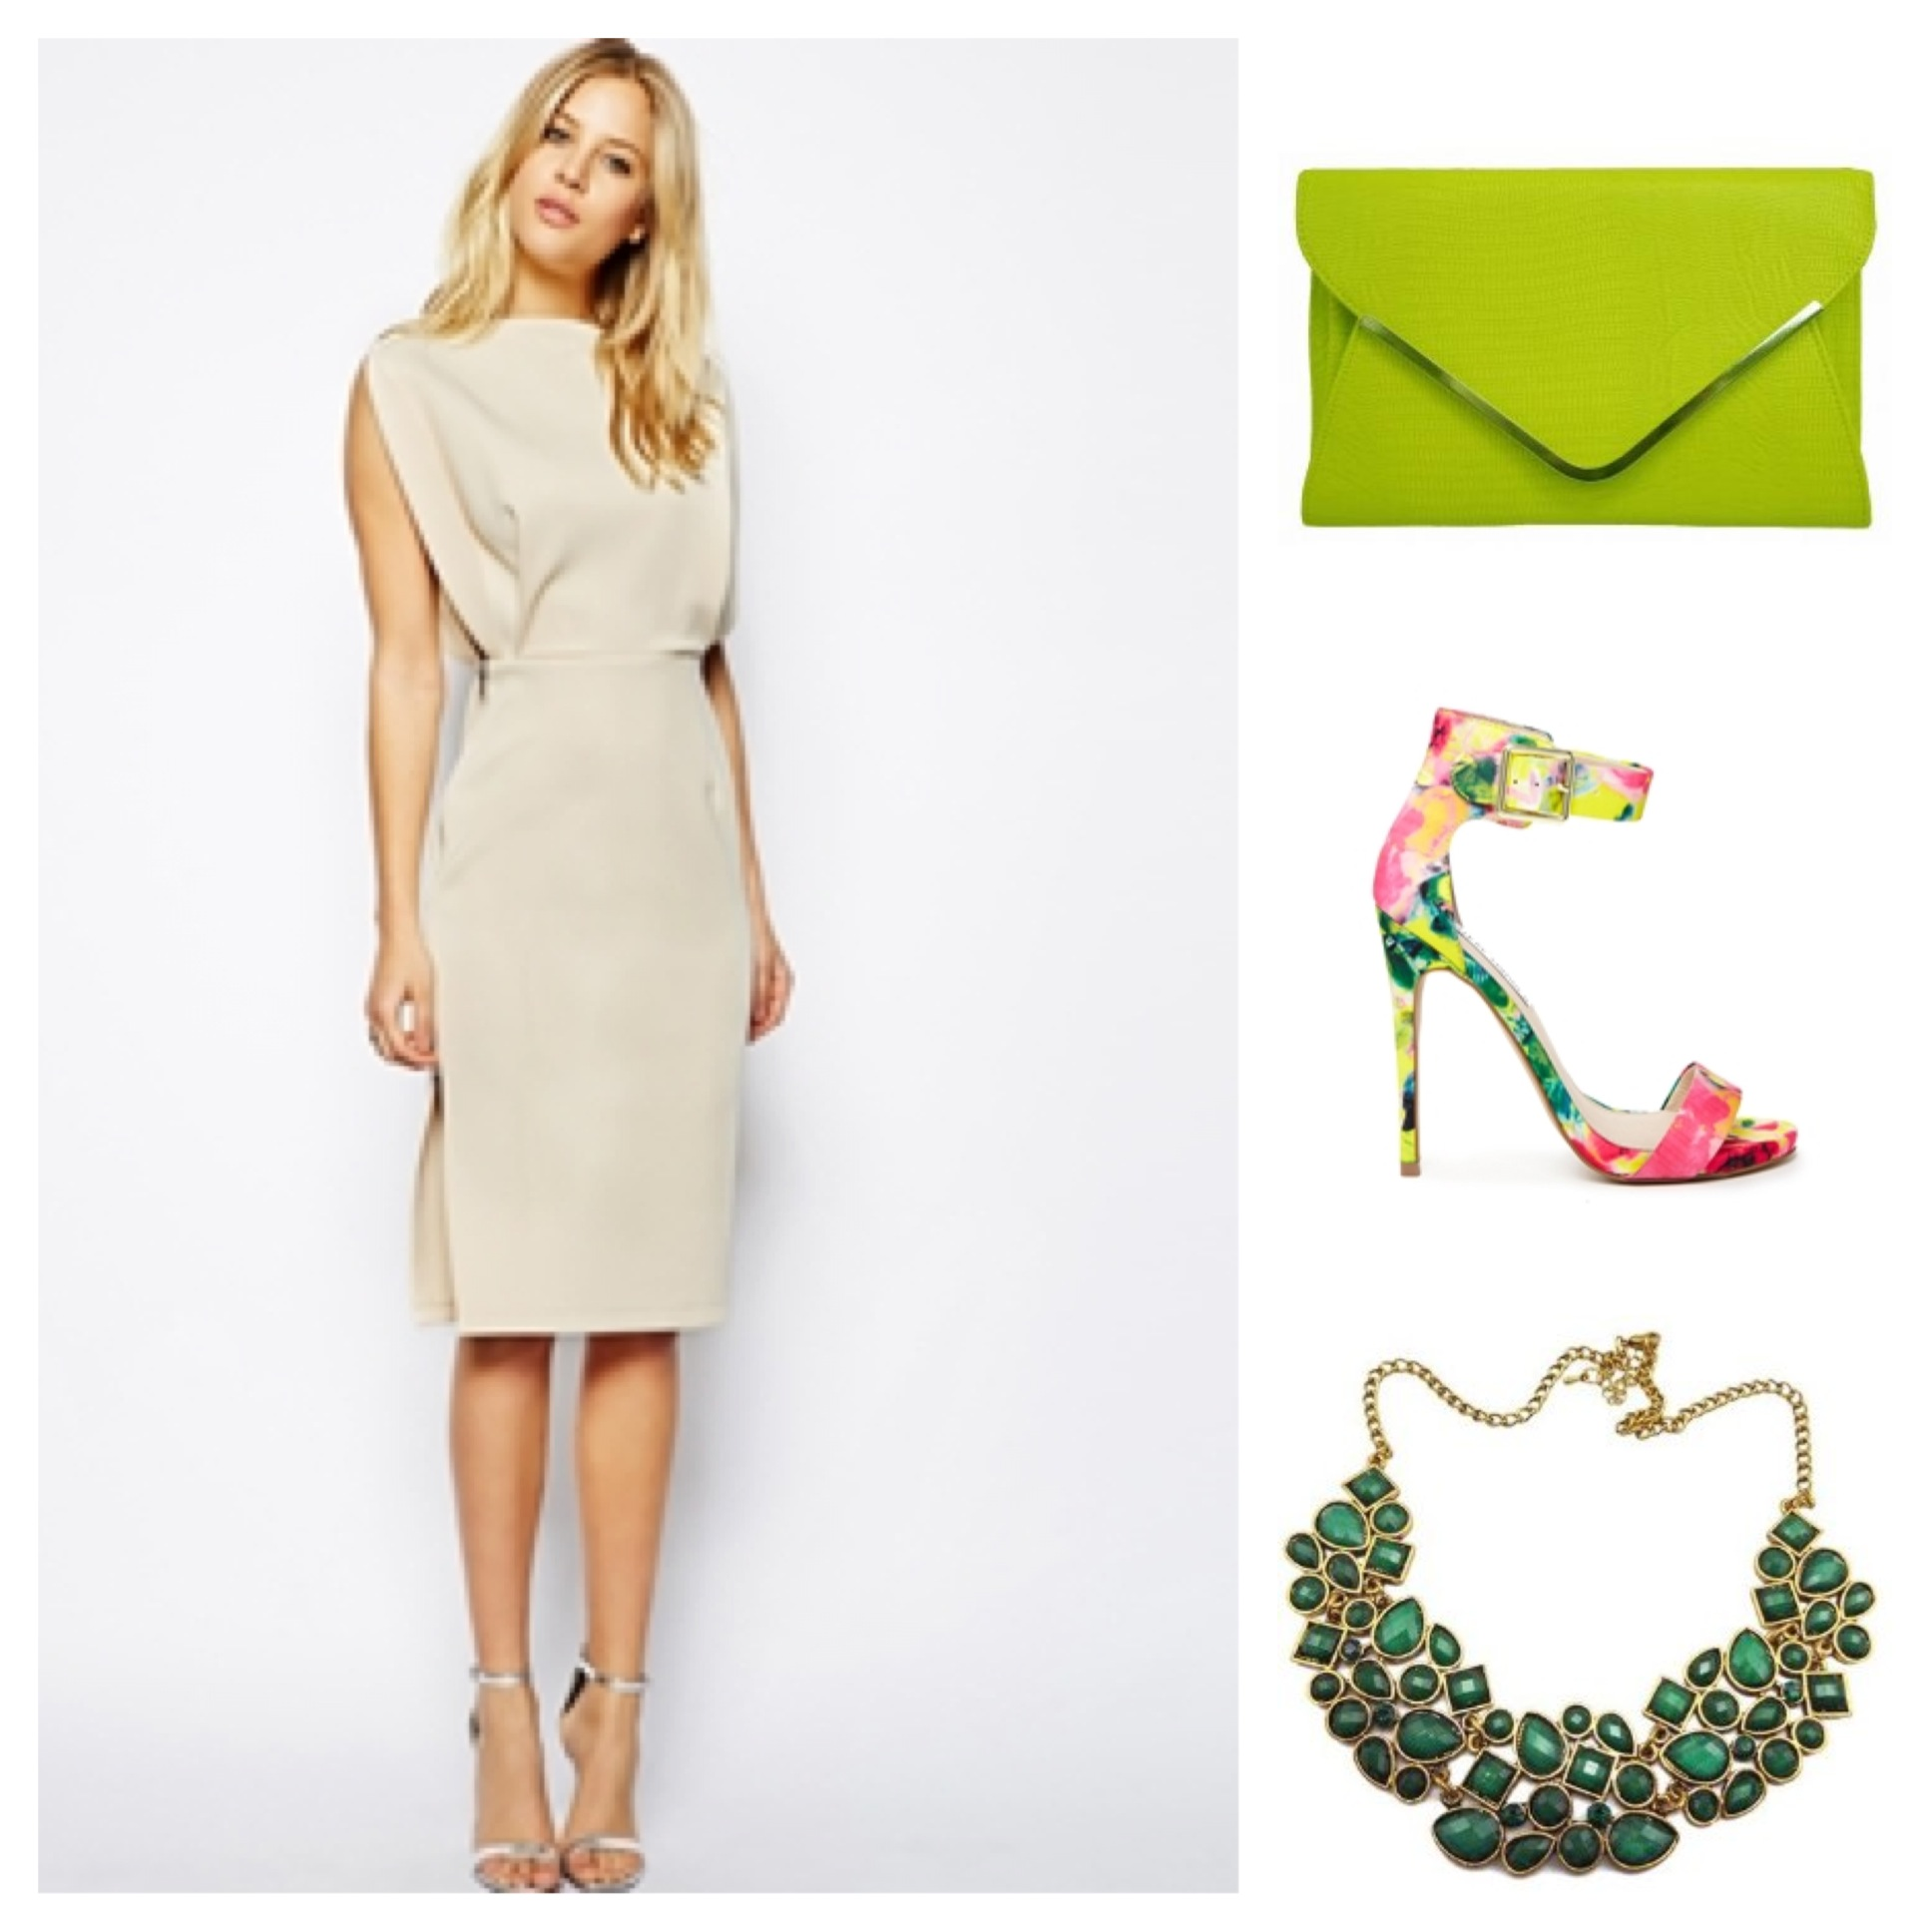 what to wear to spring summer wedding events pencil wedding dresses Pencil dresses are perfect for a gallery or loft wedding This ASOS Open Top Midi is spot on for your next modern wedding related occasion